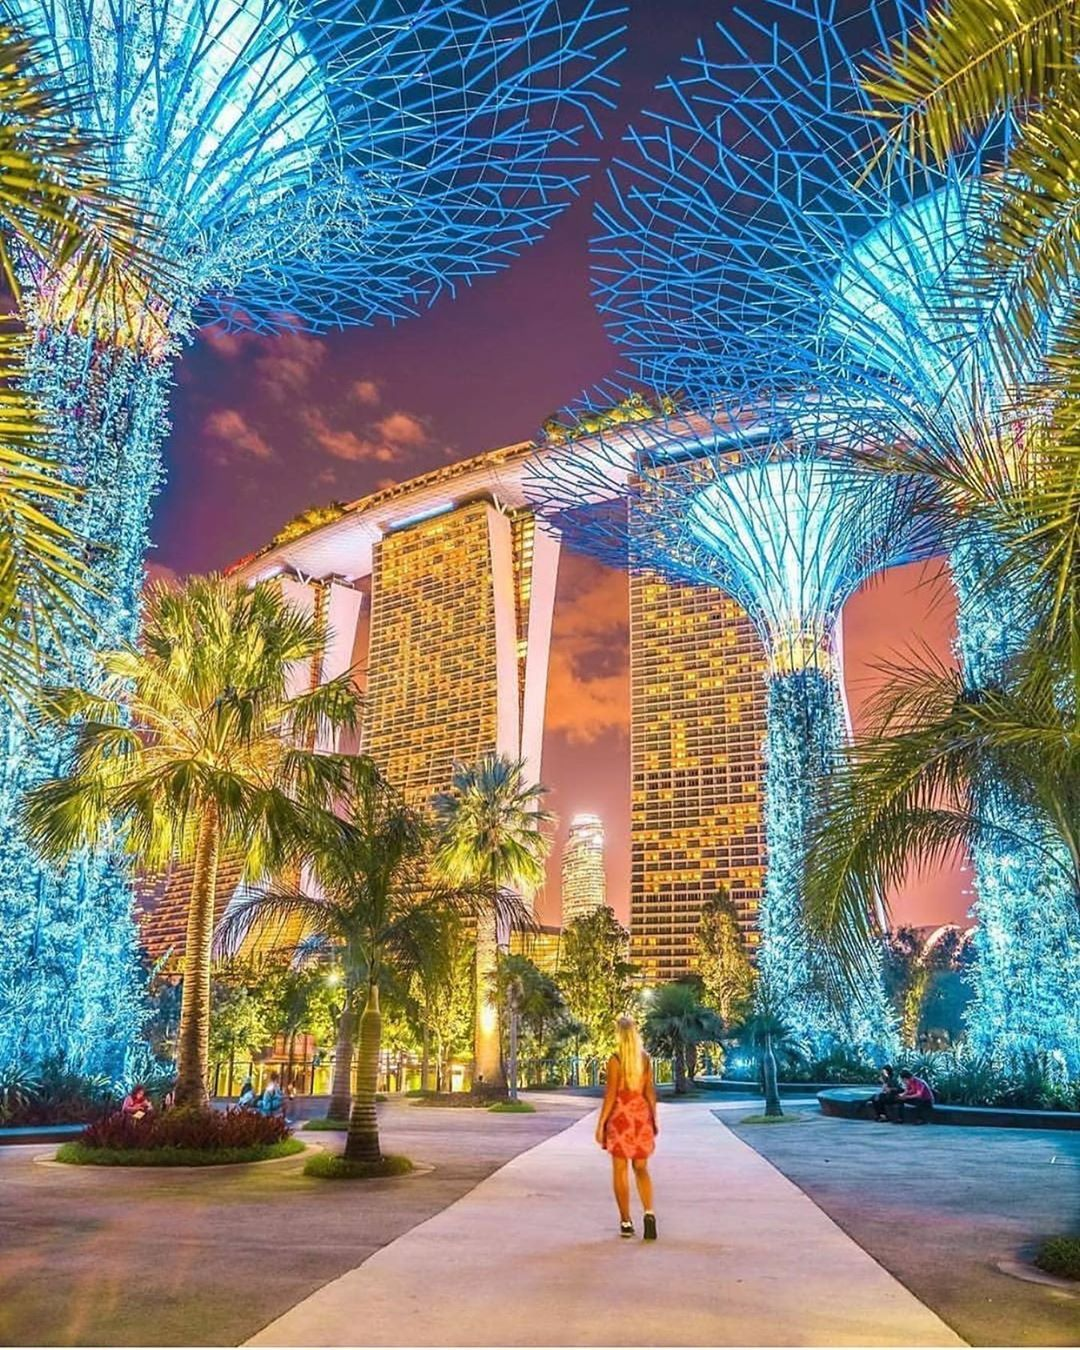 afe32046fcbc12000552d92440c092d5 - Gardens By The Bay Opening Times